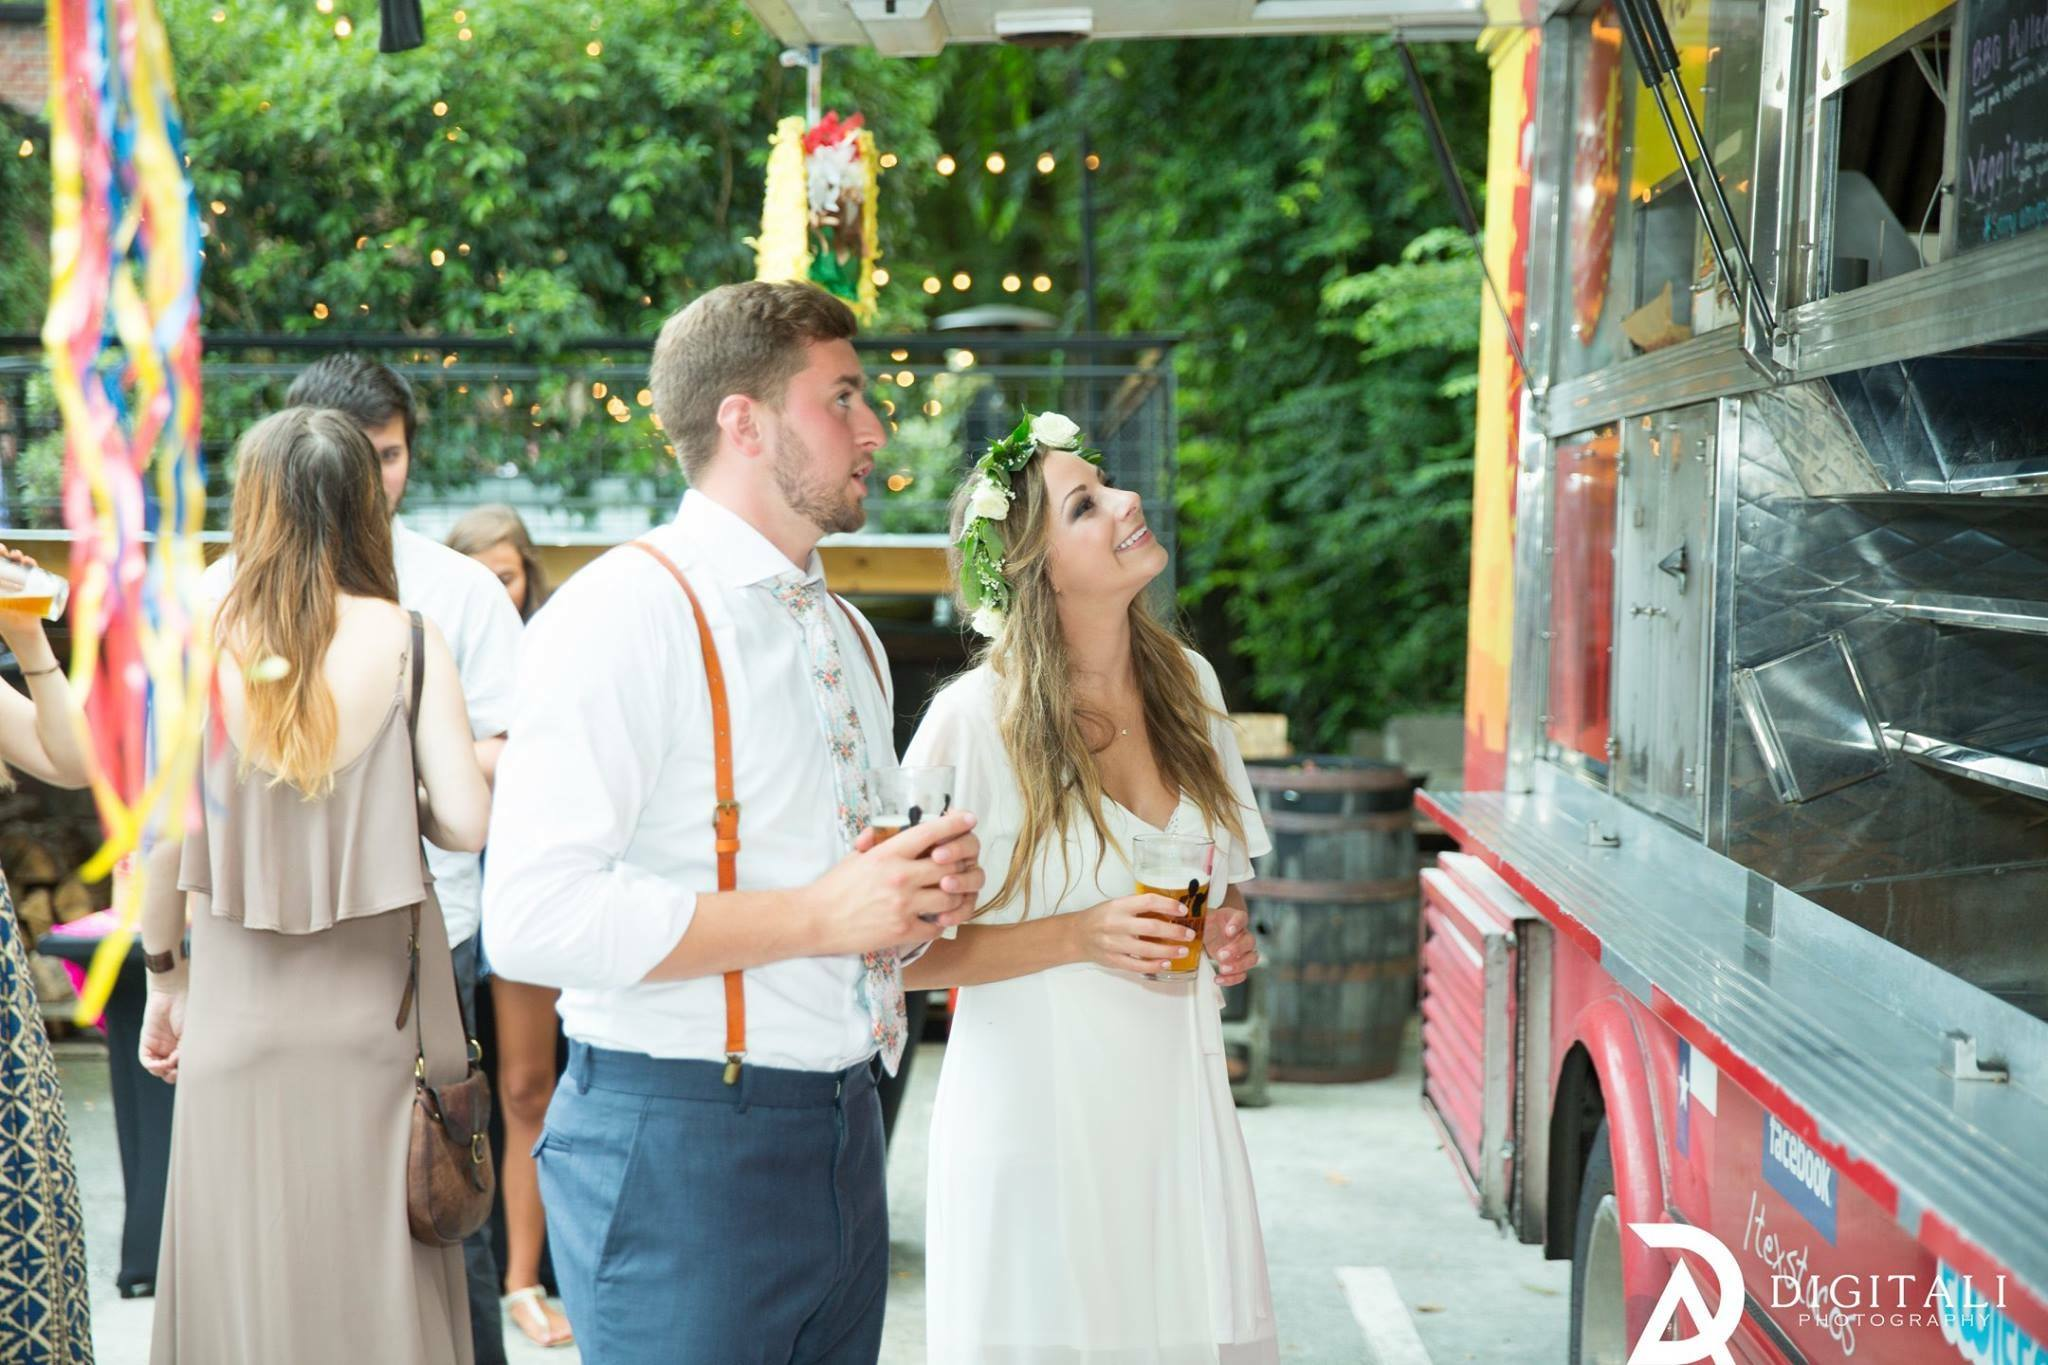 Reasons Why You Should Consider a Local Food Truck and Decoration From The Bridal Shop Milton eynes